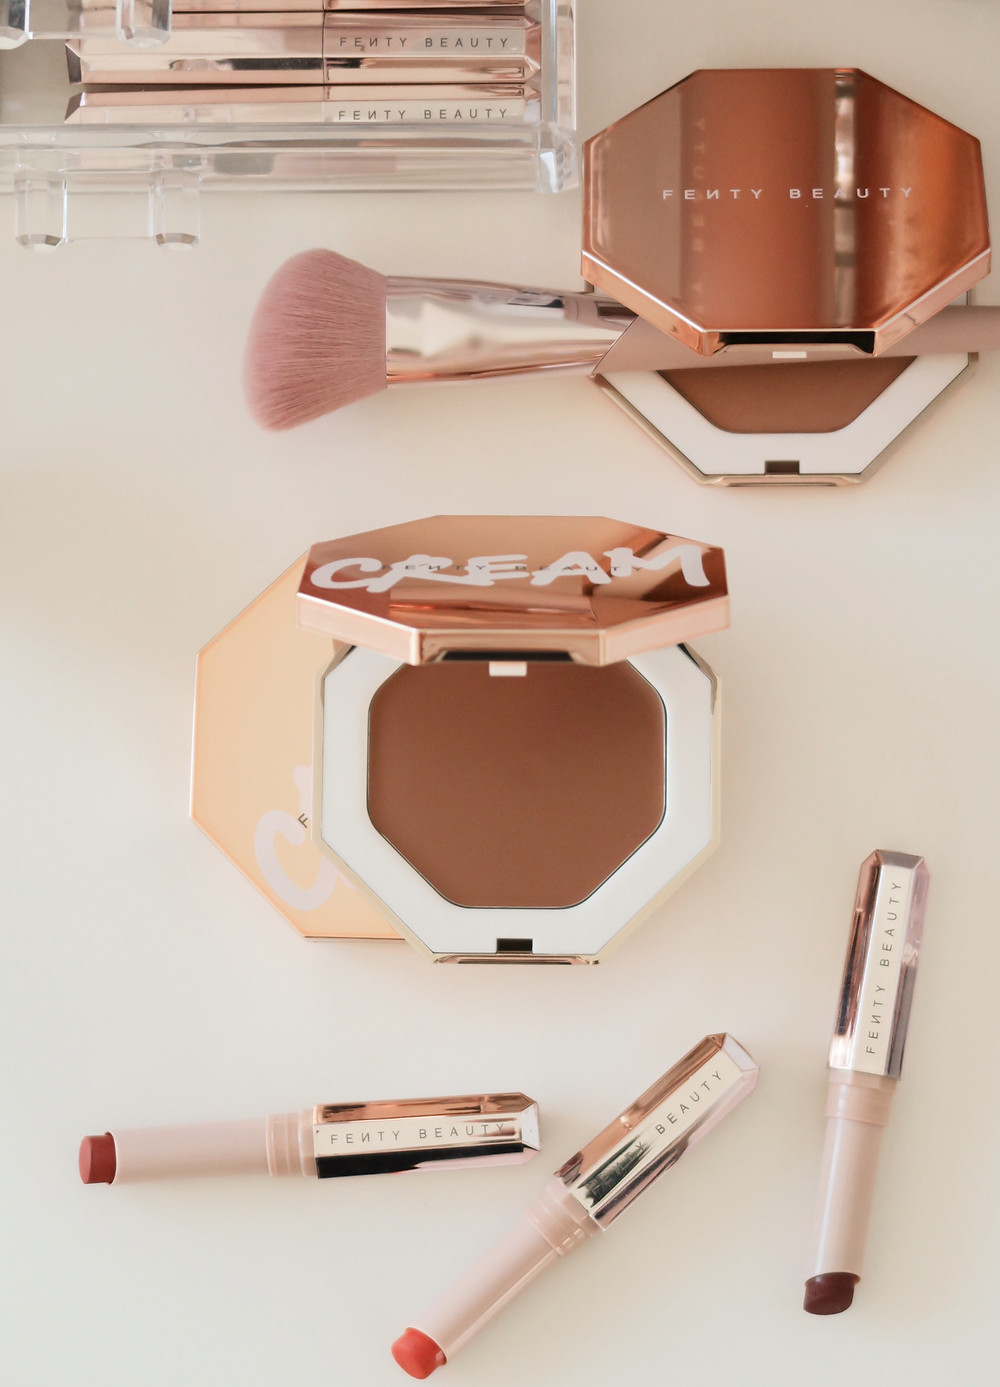 fenty beauty cheeks out cream bronzer blush review